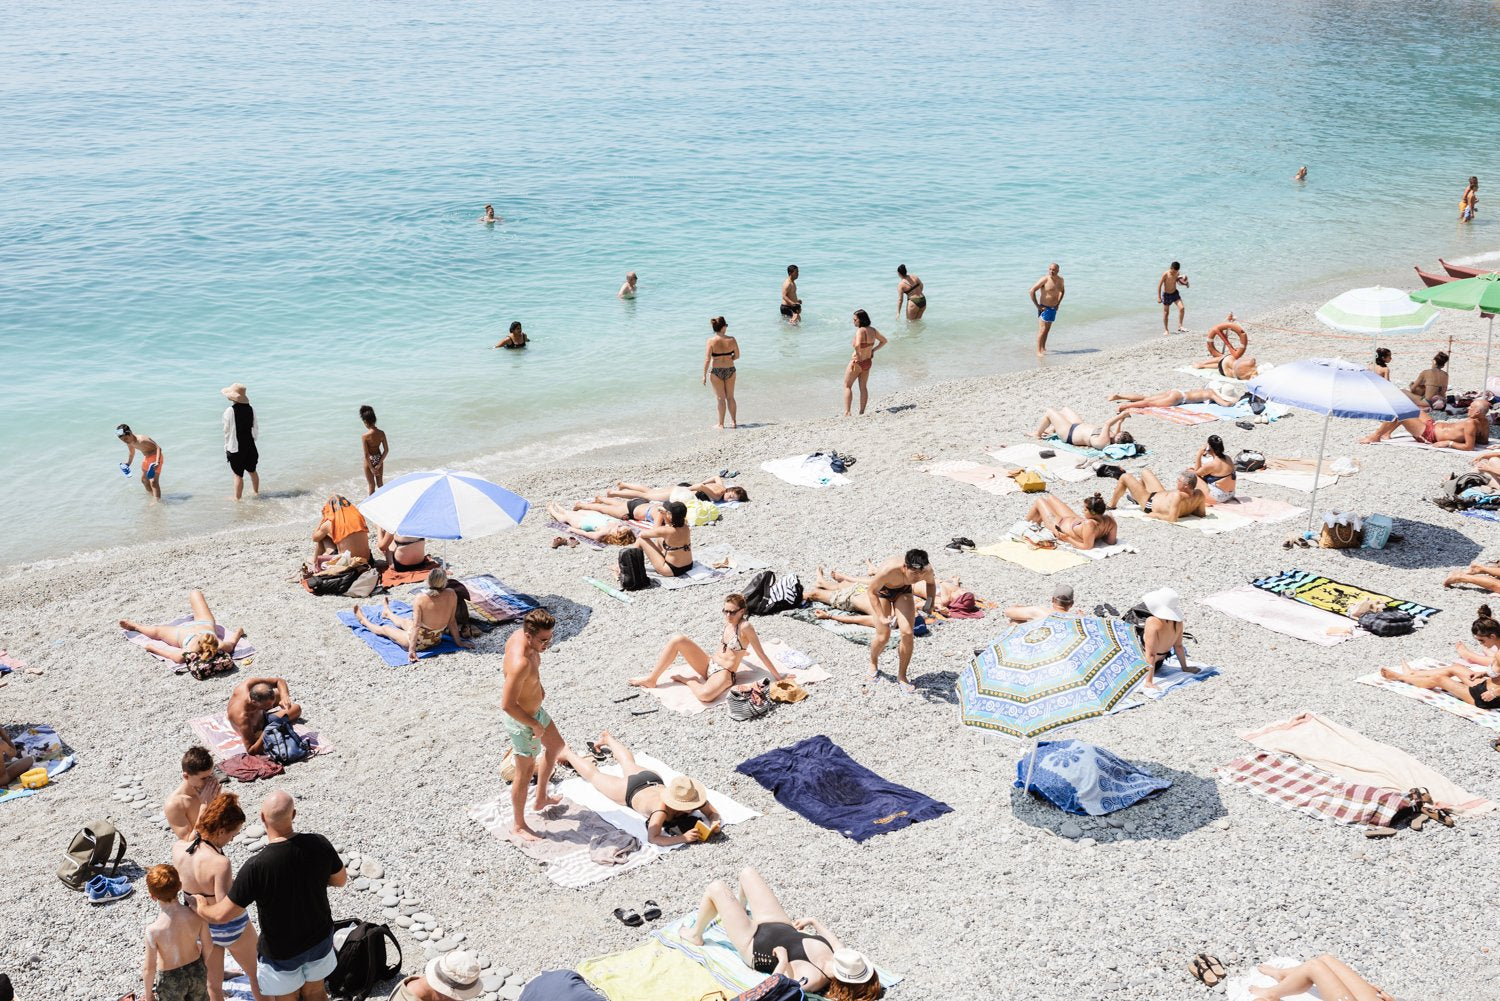 Beach goers lying on sand at italian beach